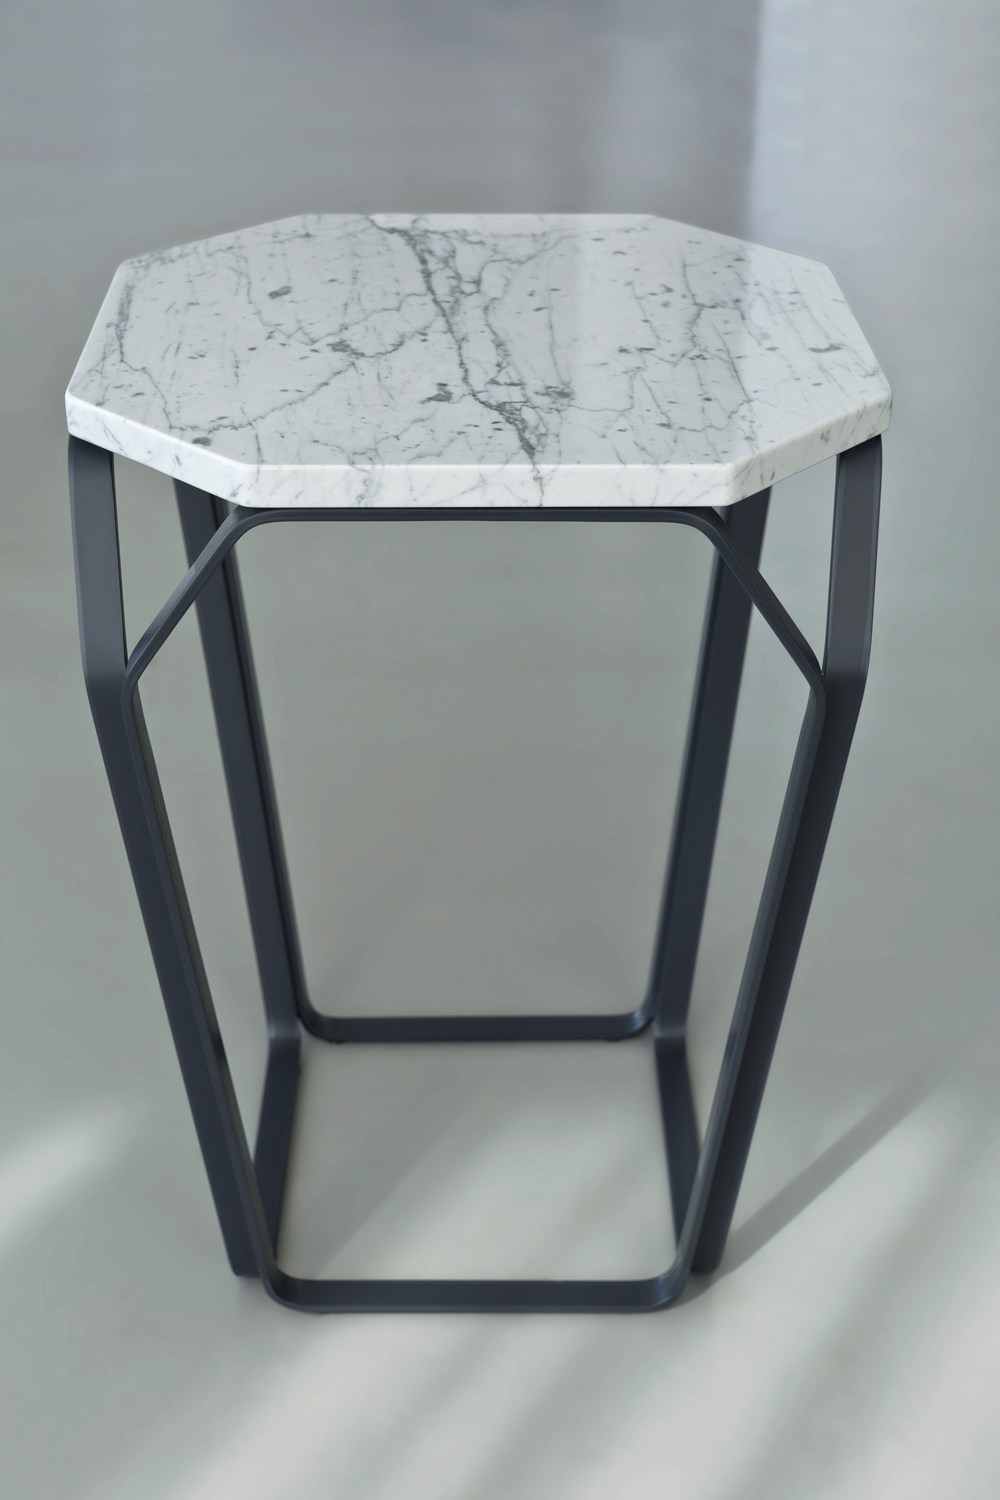 TRAY 1 Carrara marble coffee table Tray Collection By meme design